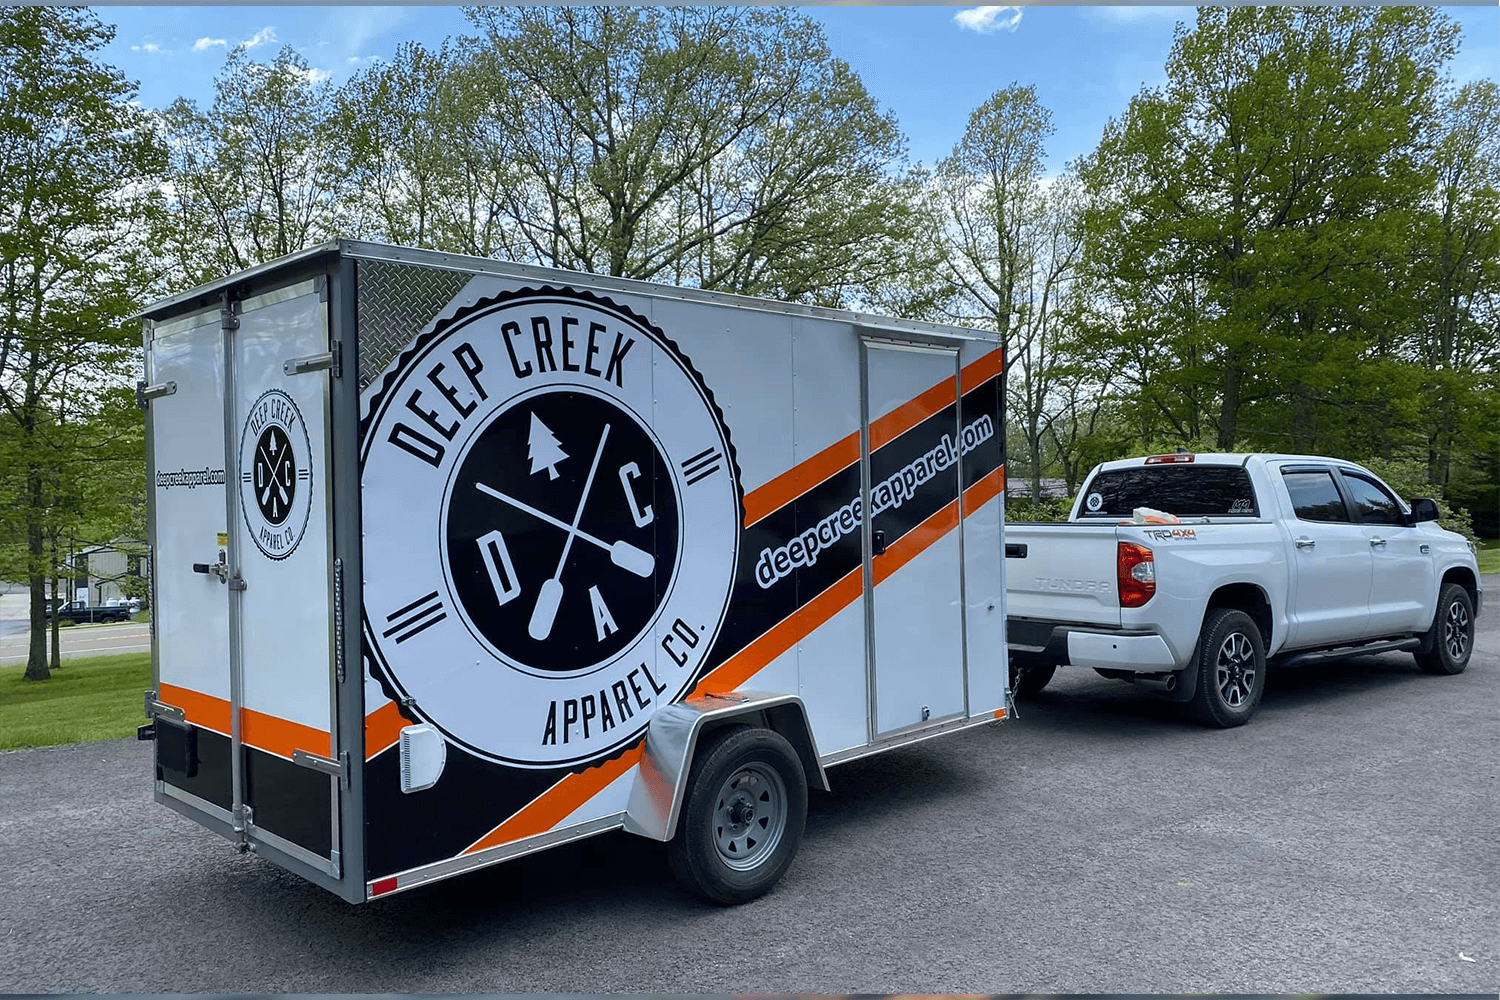 Deep Creek Apparel image of company truck and trailer with logo